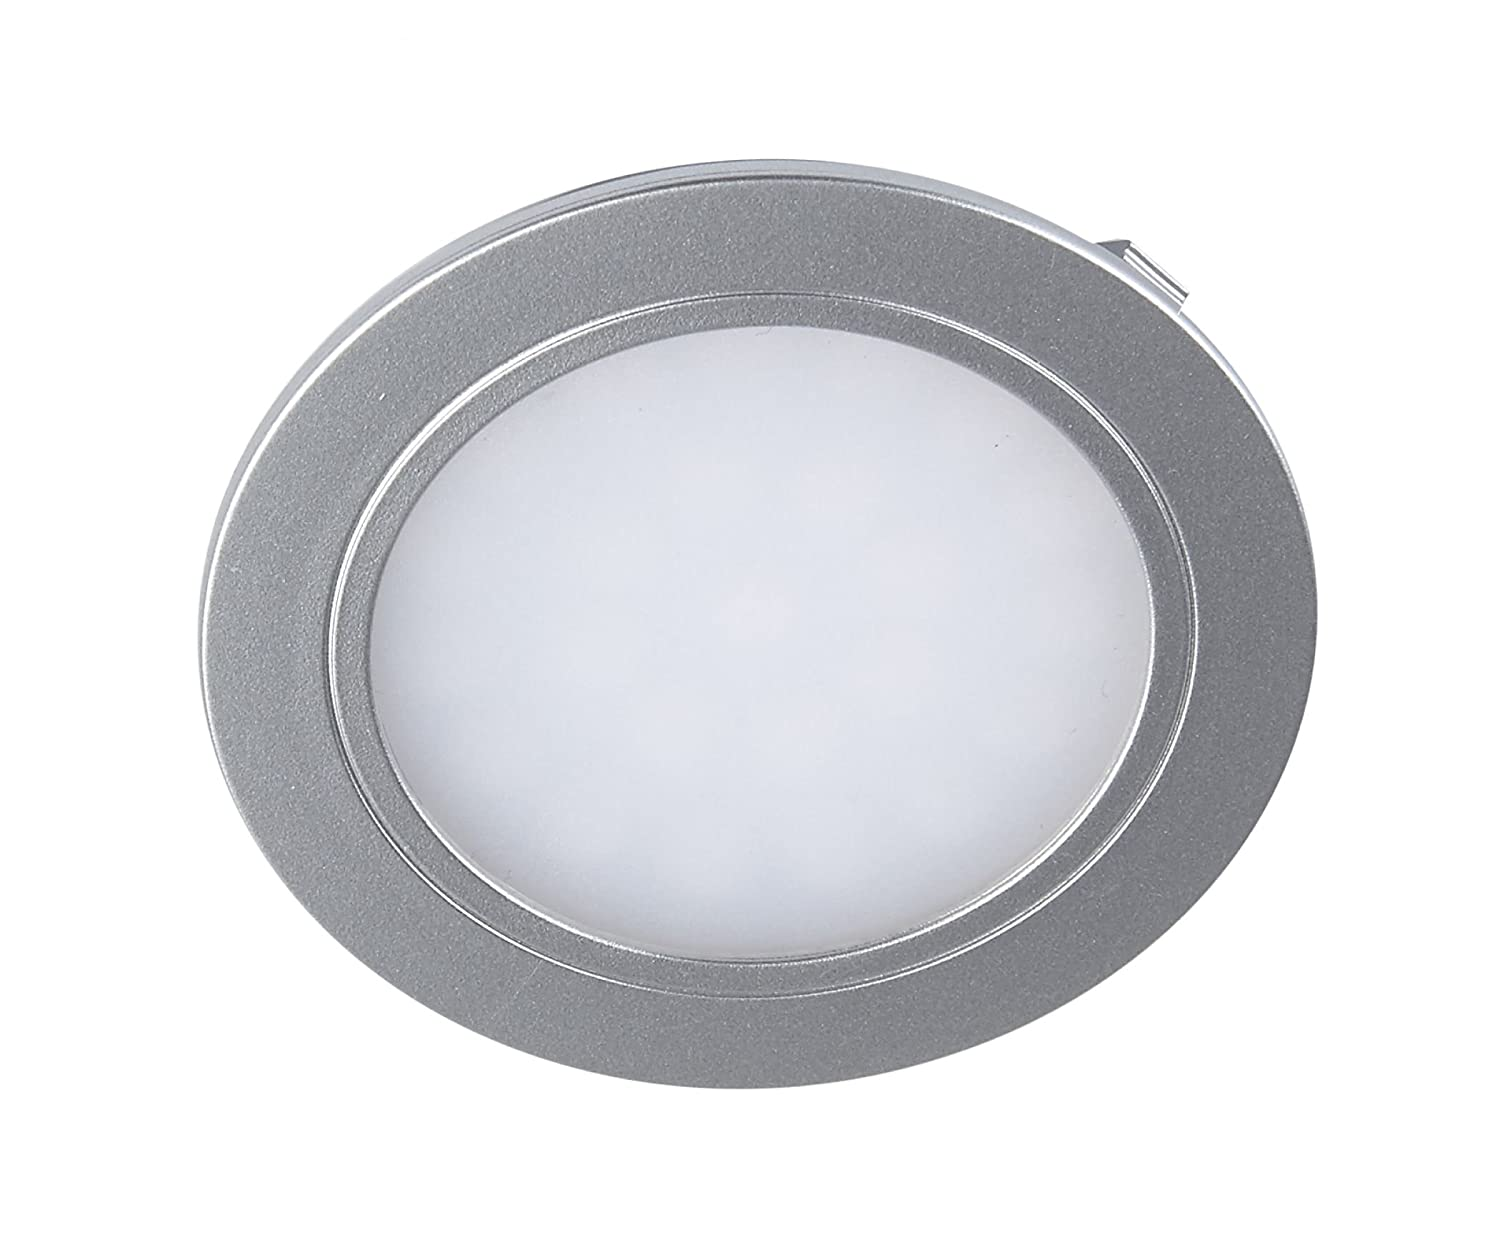 Leyton Lighting CLR-SAT-WW 2w 12v LED Recessed Downlight Frosted Satin Silver Warm White 3000K